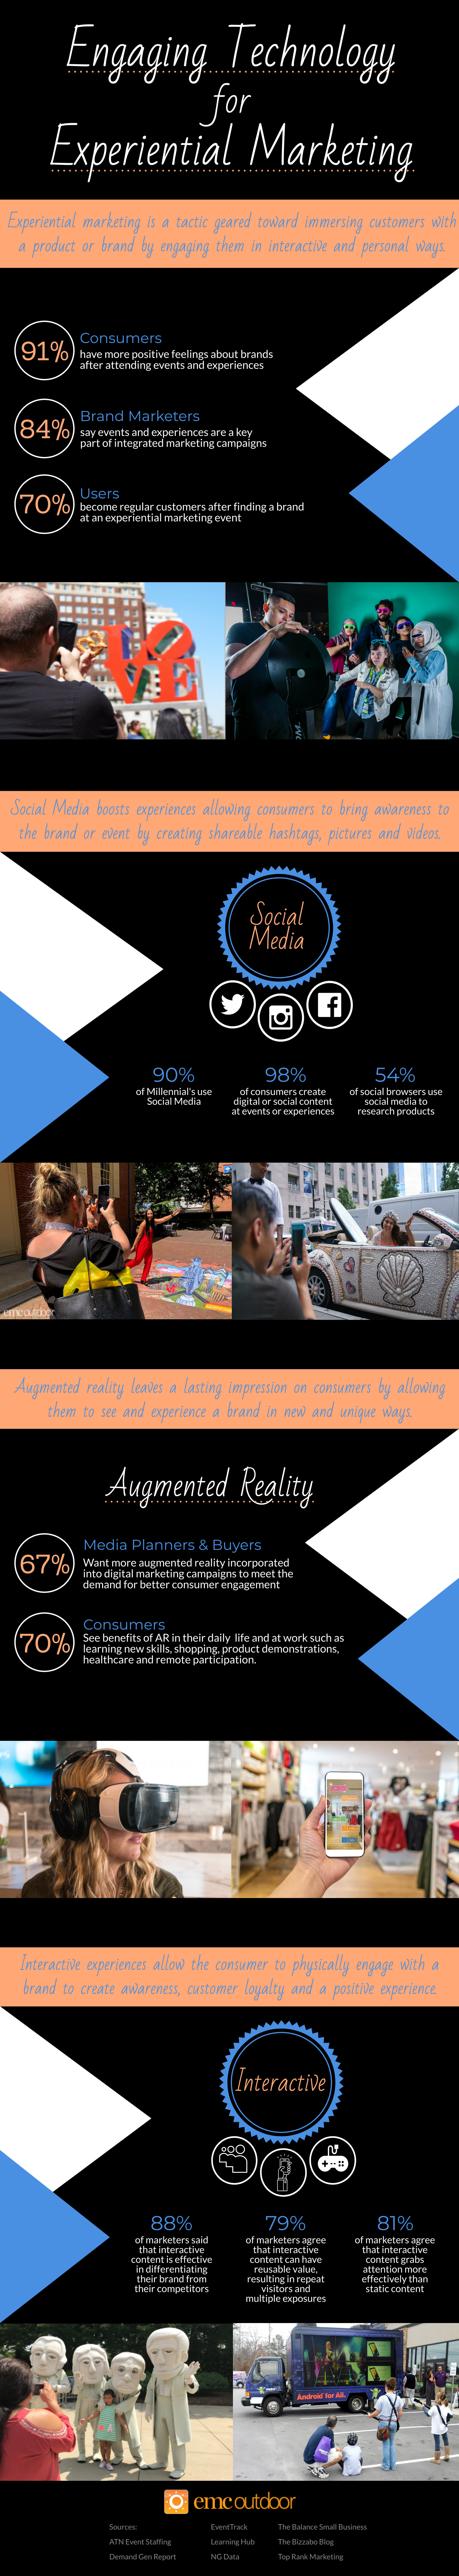 Engaging-Technology-for-Experiential-Marketing